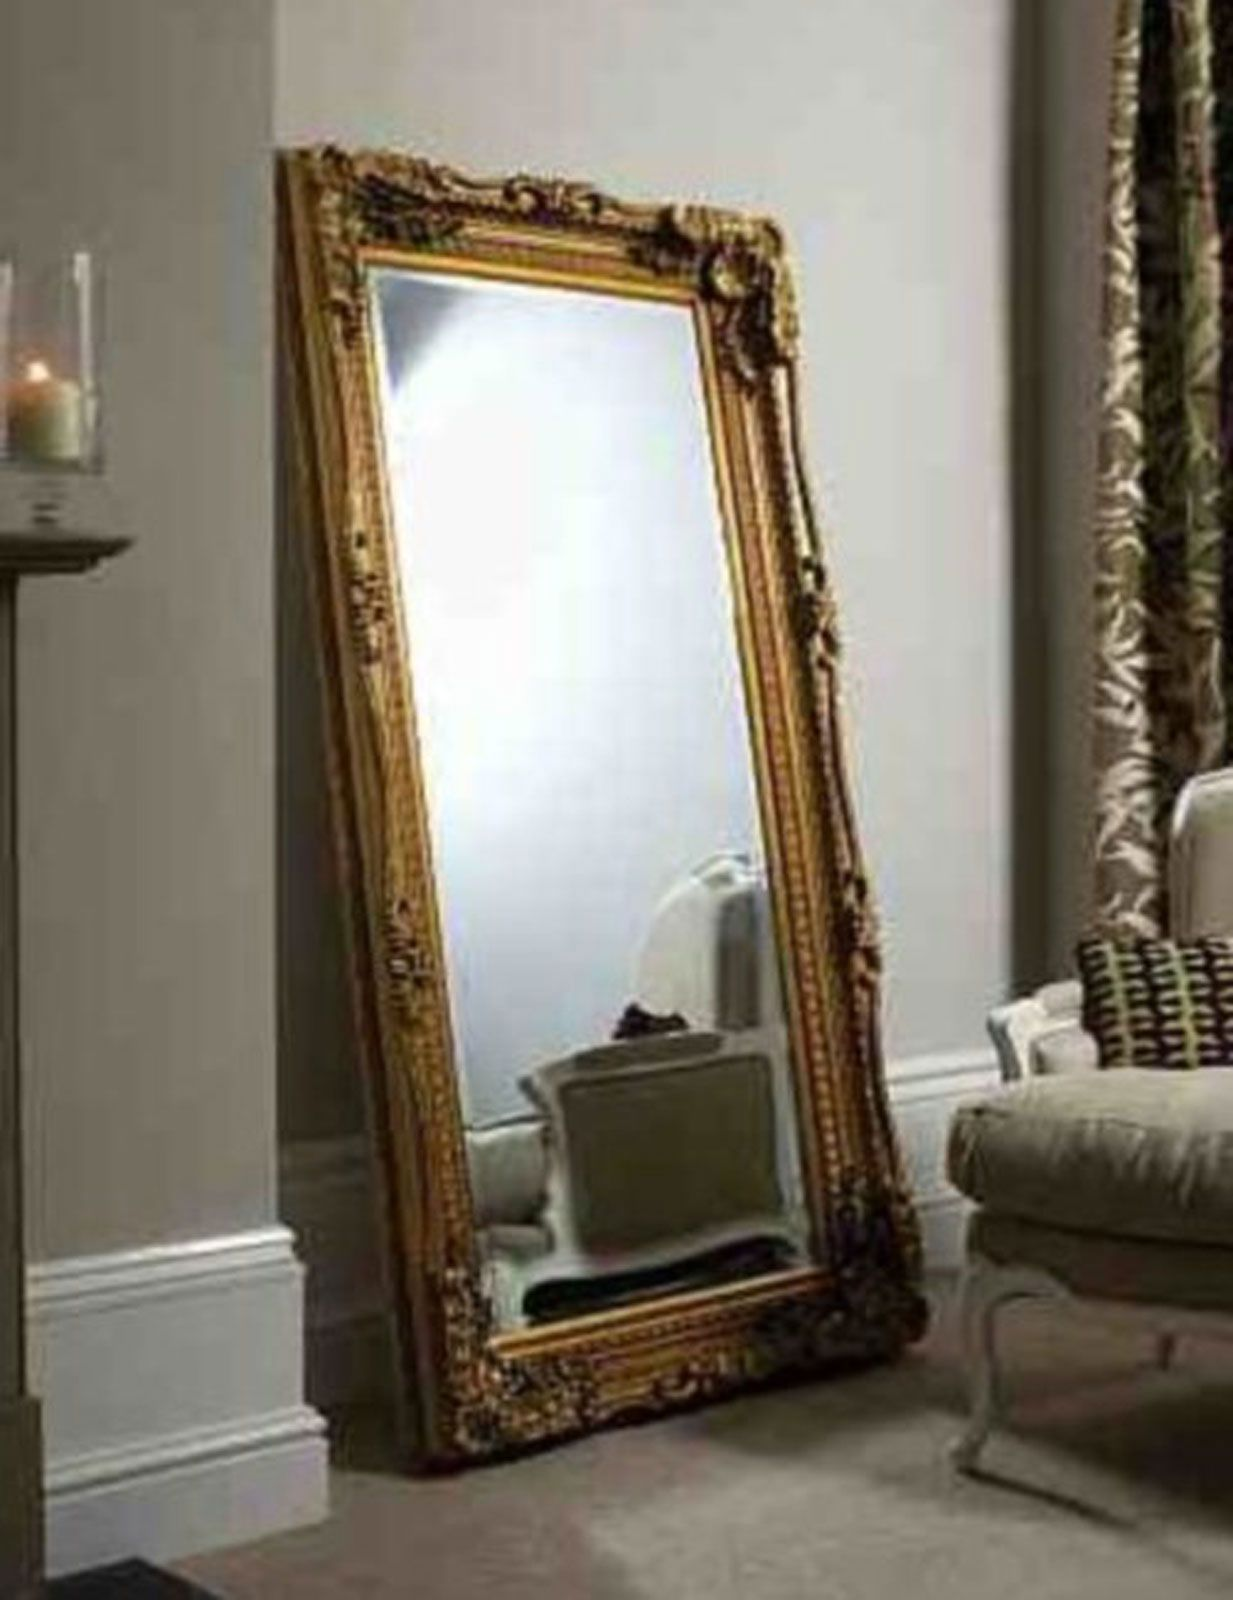 Boldly carved ornate framed gold wall mirror would be a beautiful boldly carved ornate framed gold wall mirror would be a beautiful and stylish addition to any amipublicfo Images